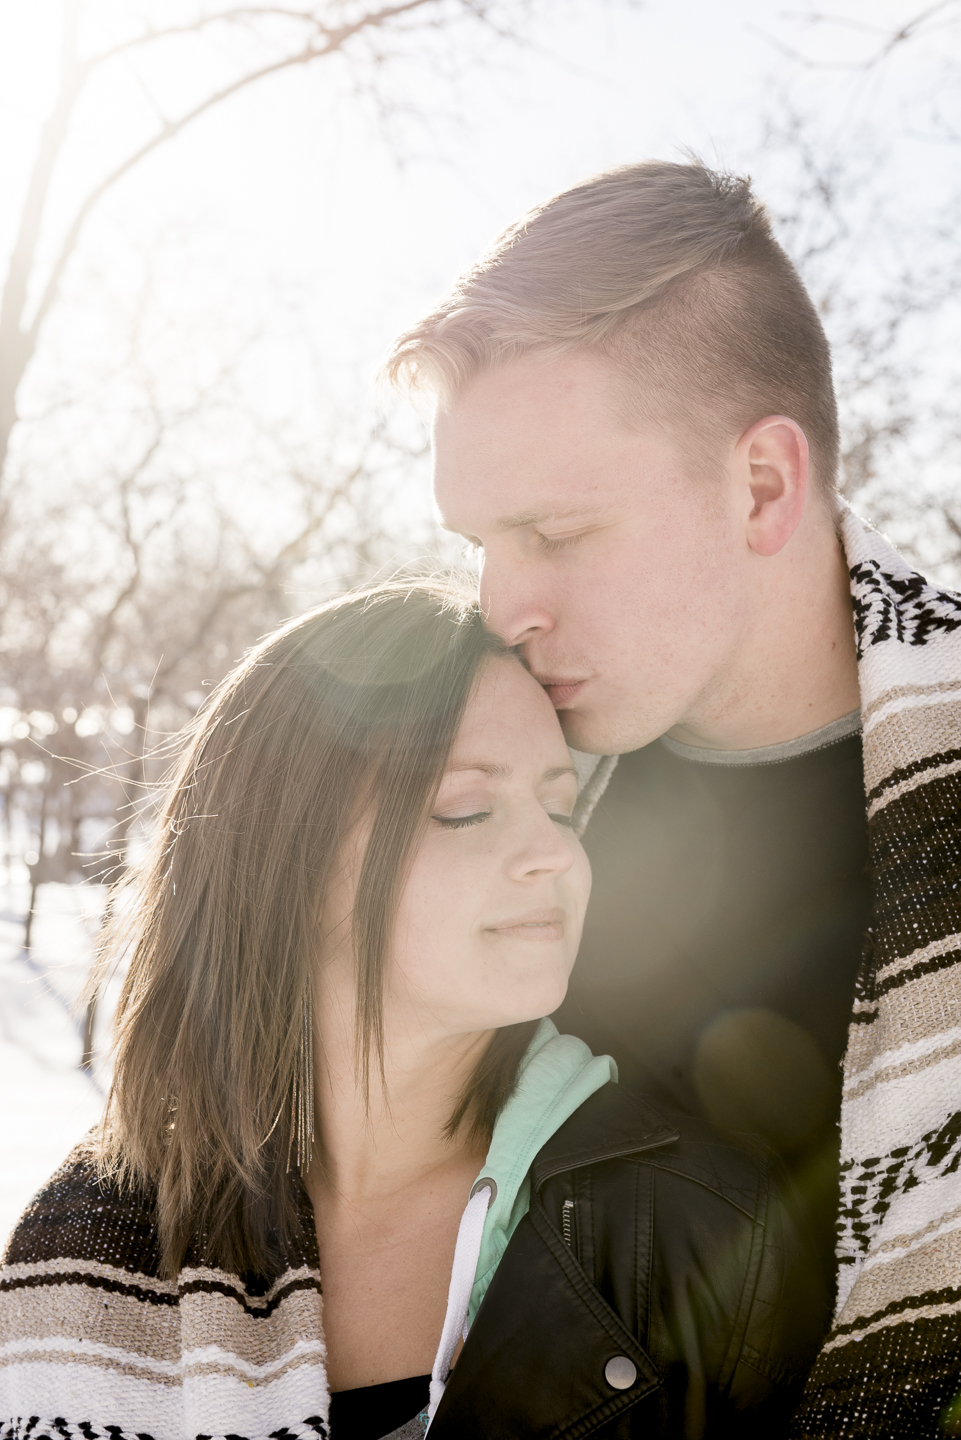 savage_couple_portrait_snow_pine_utah_Christin-9.jpg